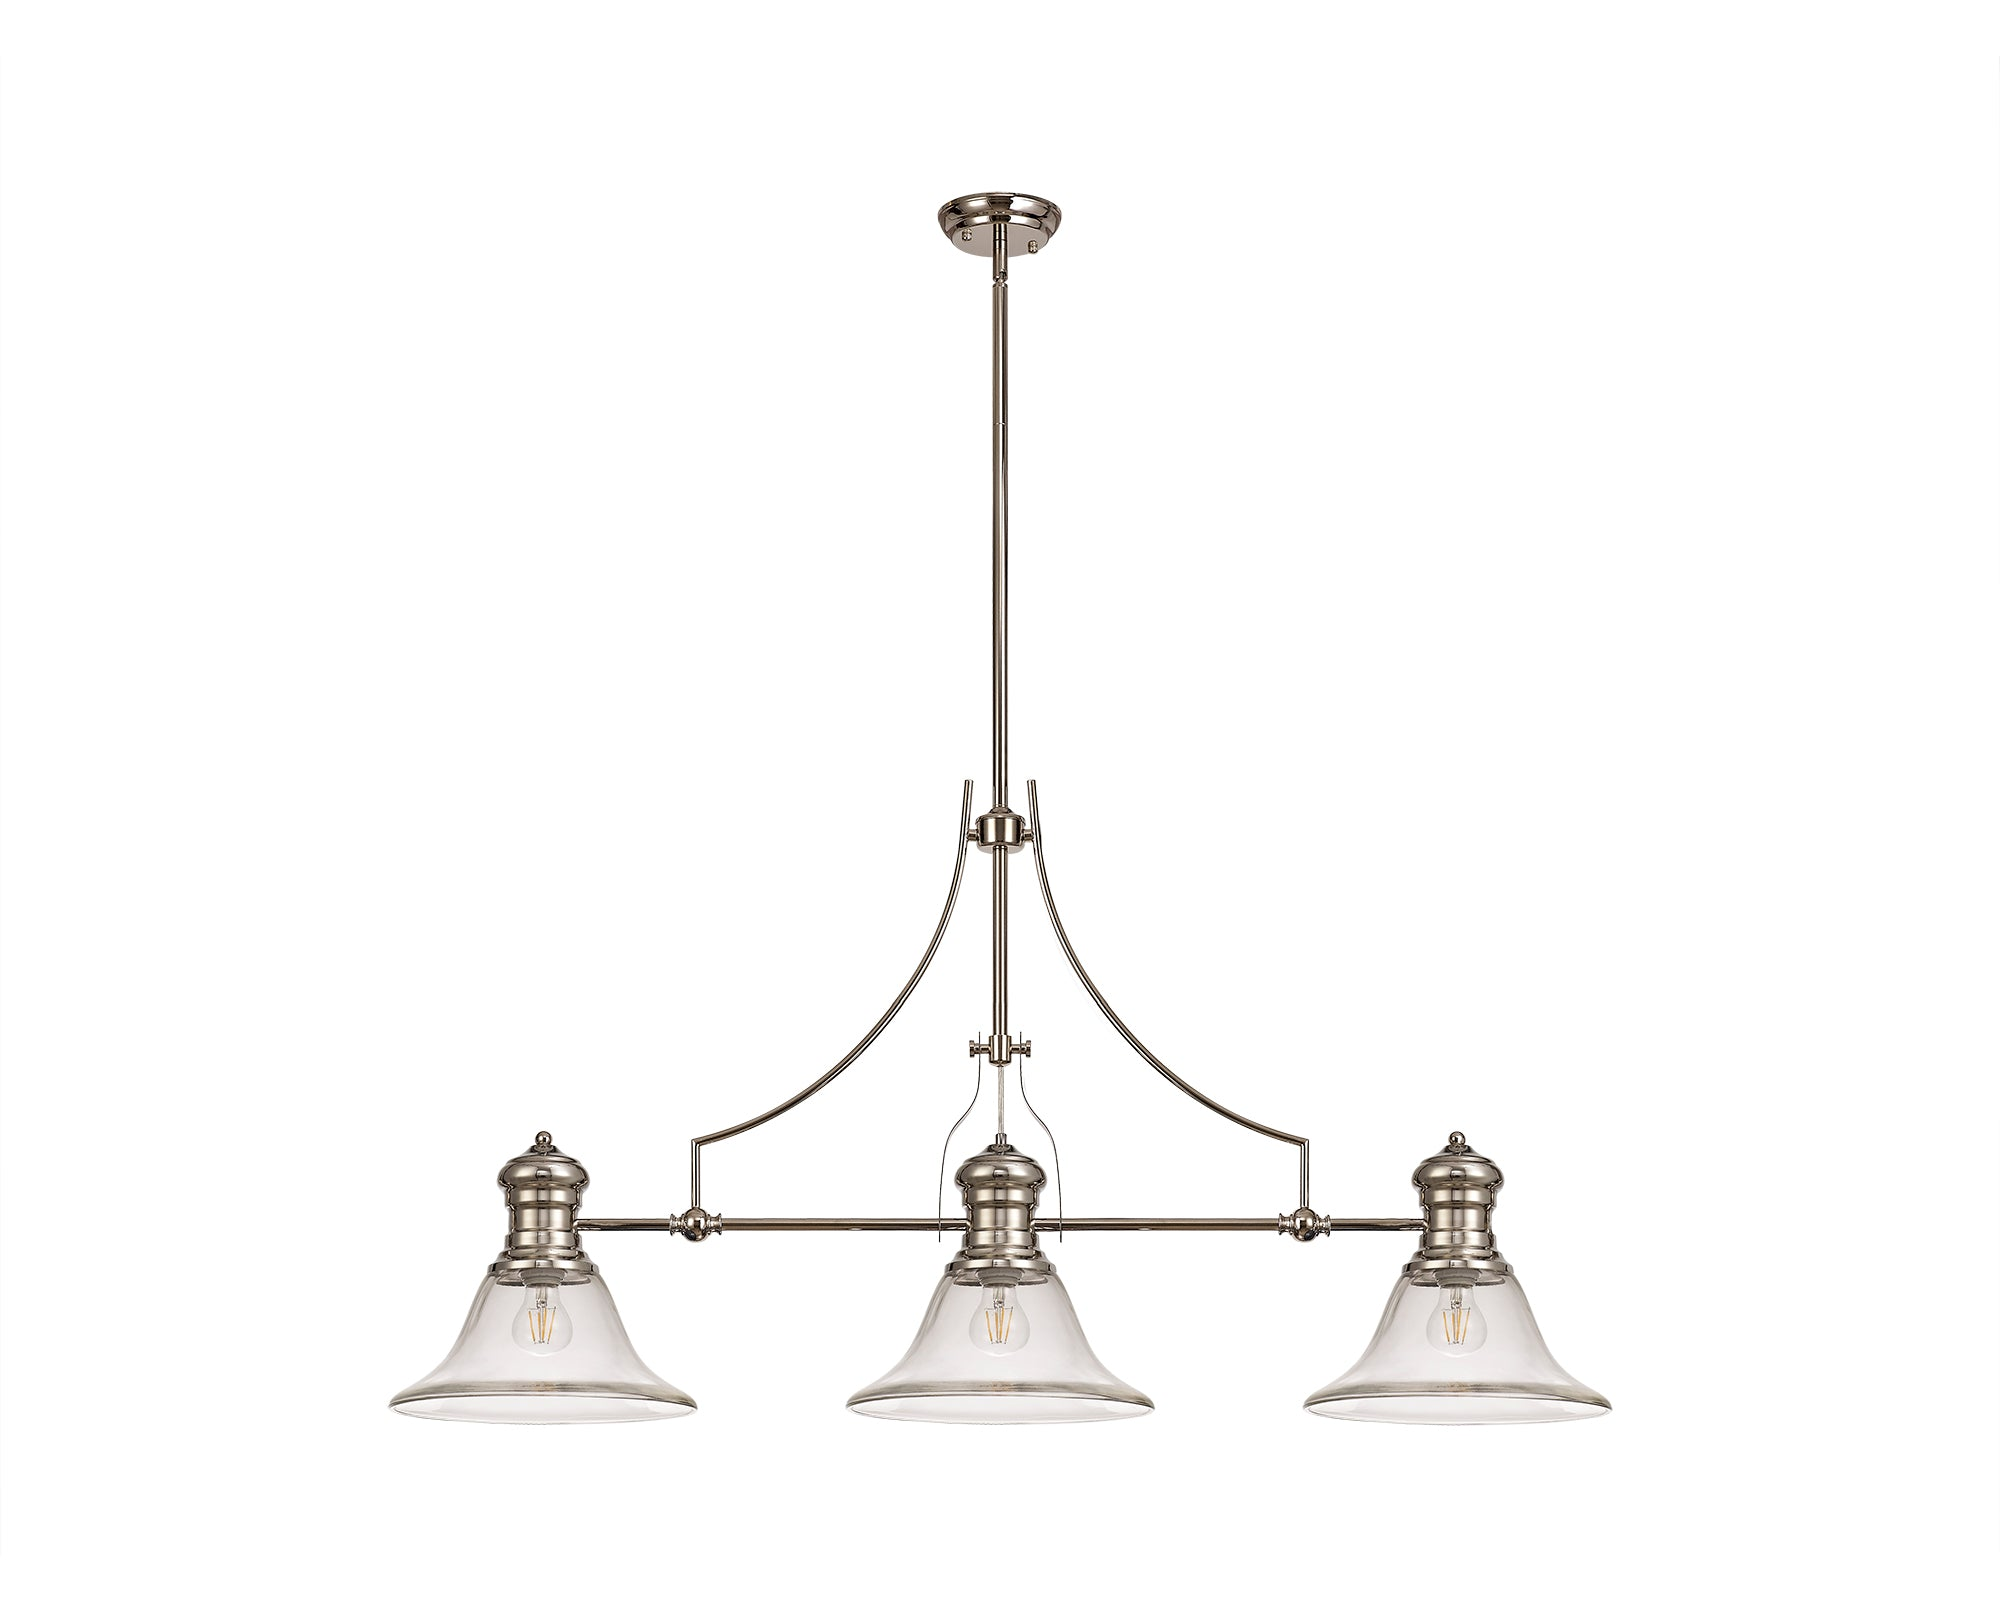 WAREHOUSE 3 Light Telescopic Pendant E27 With 30cm Smooth Bell Glass Shade, Polished Nickel/Clear